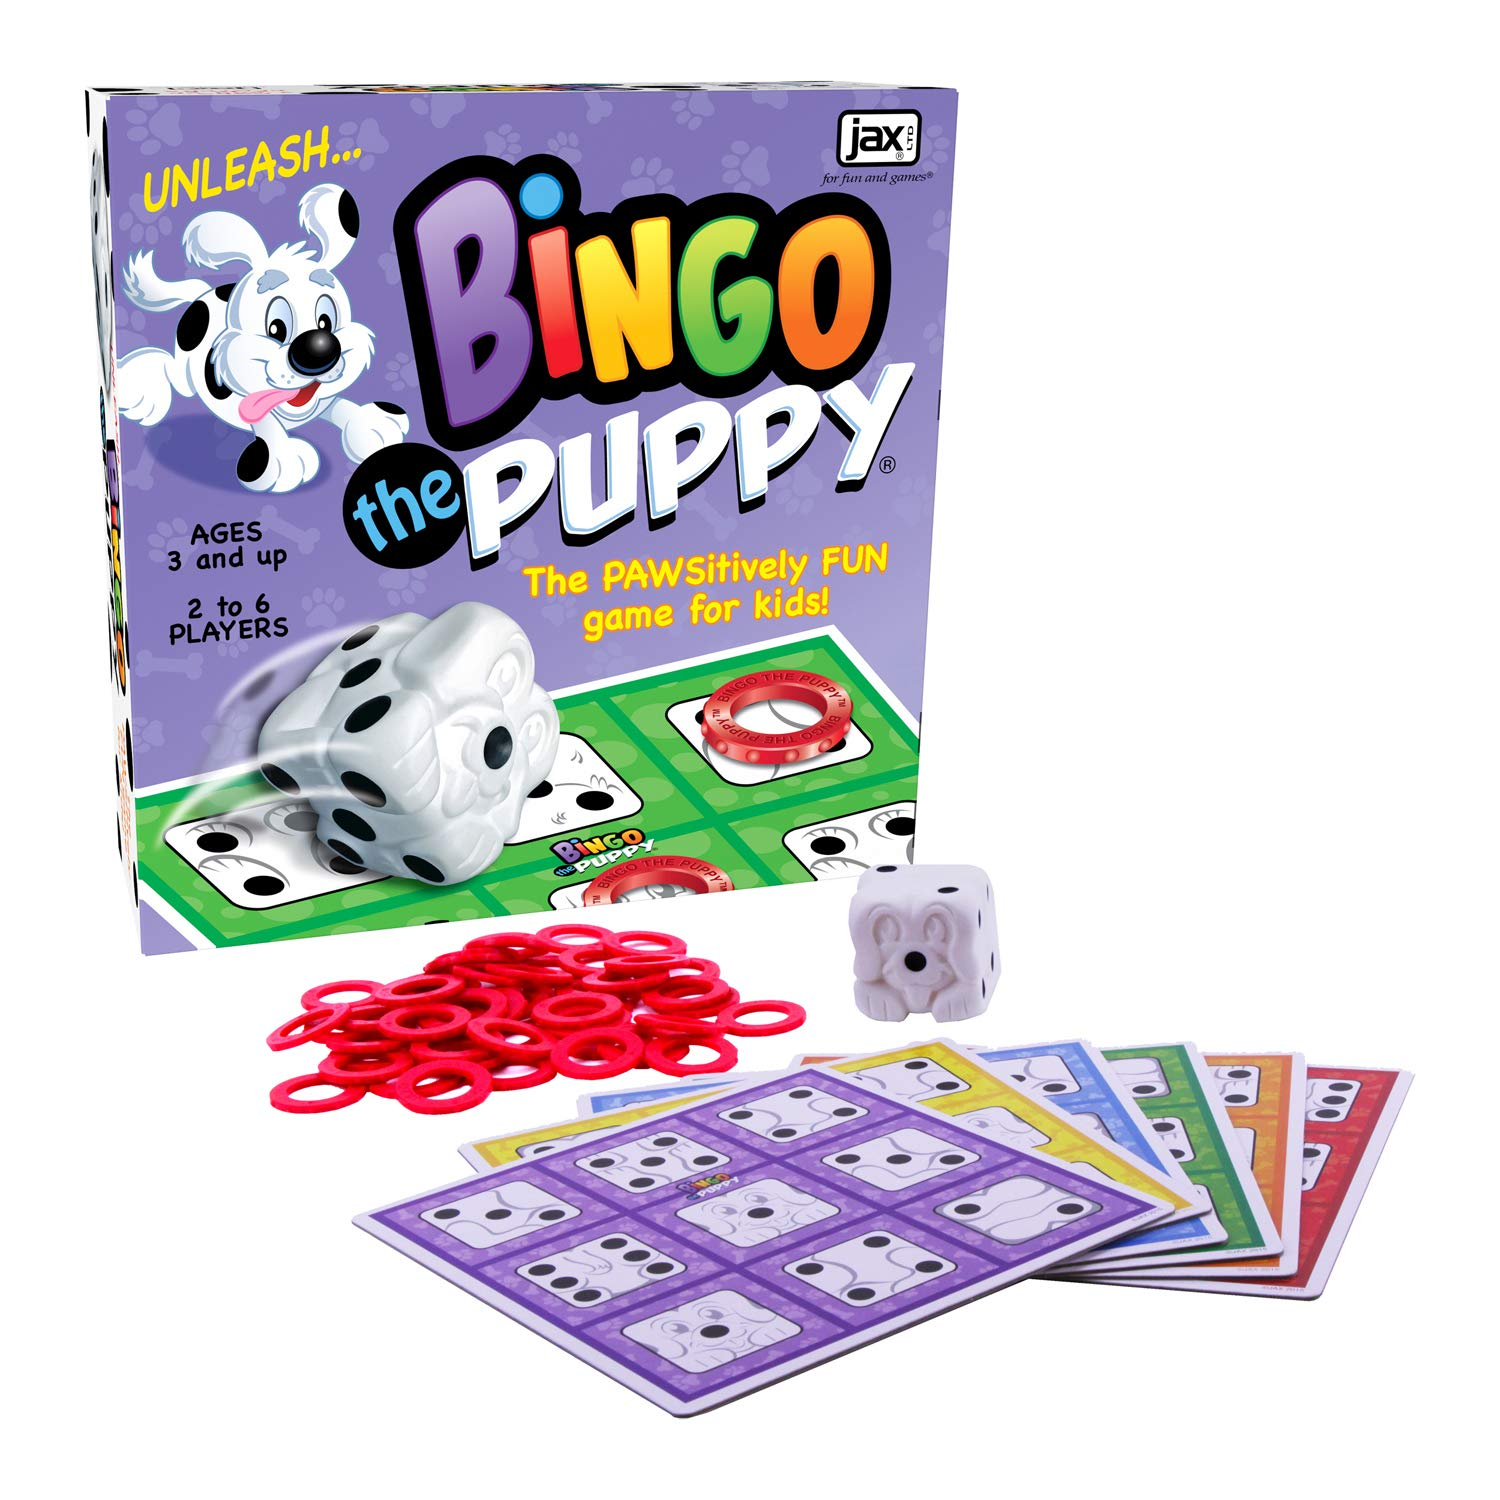 Bingo The Puppy Board Game: Amazon.es: Juguetes y juegos